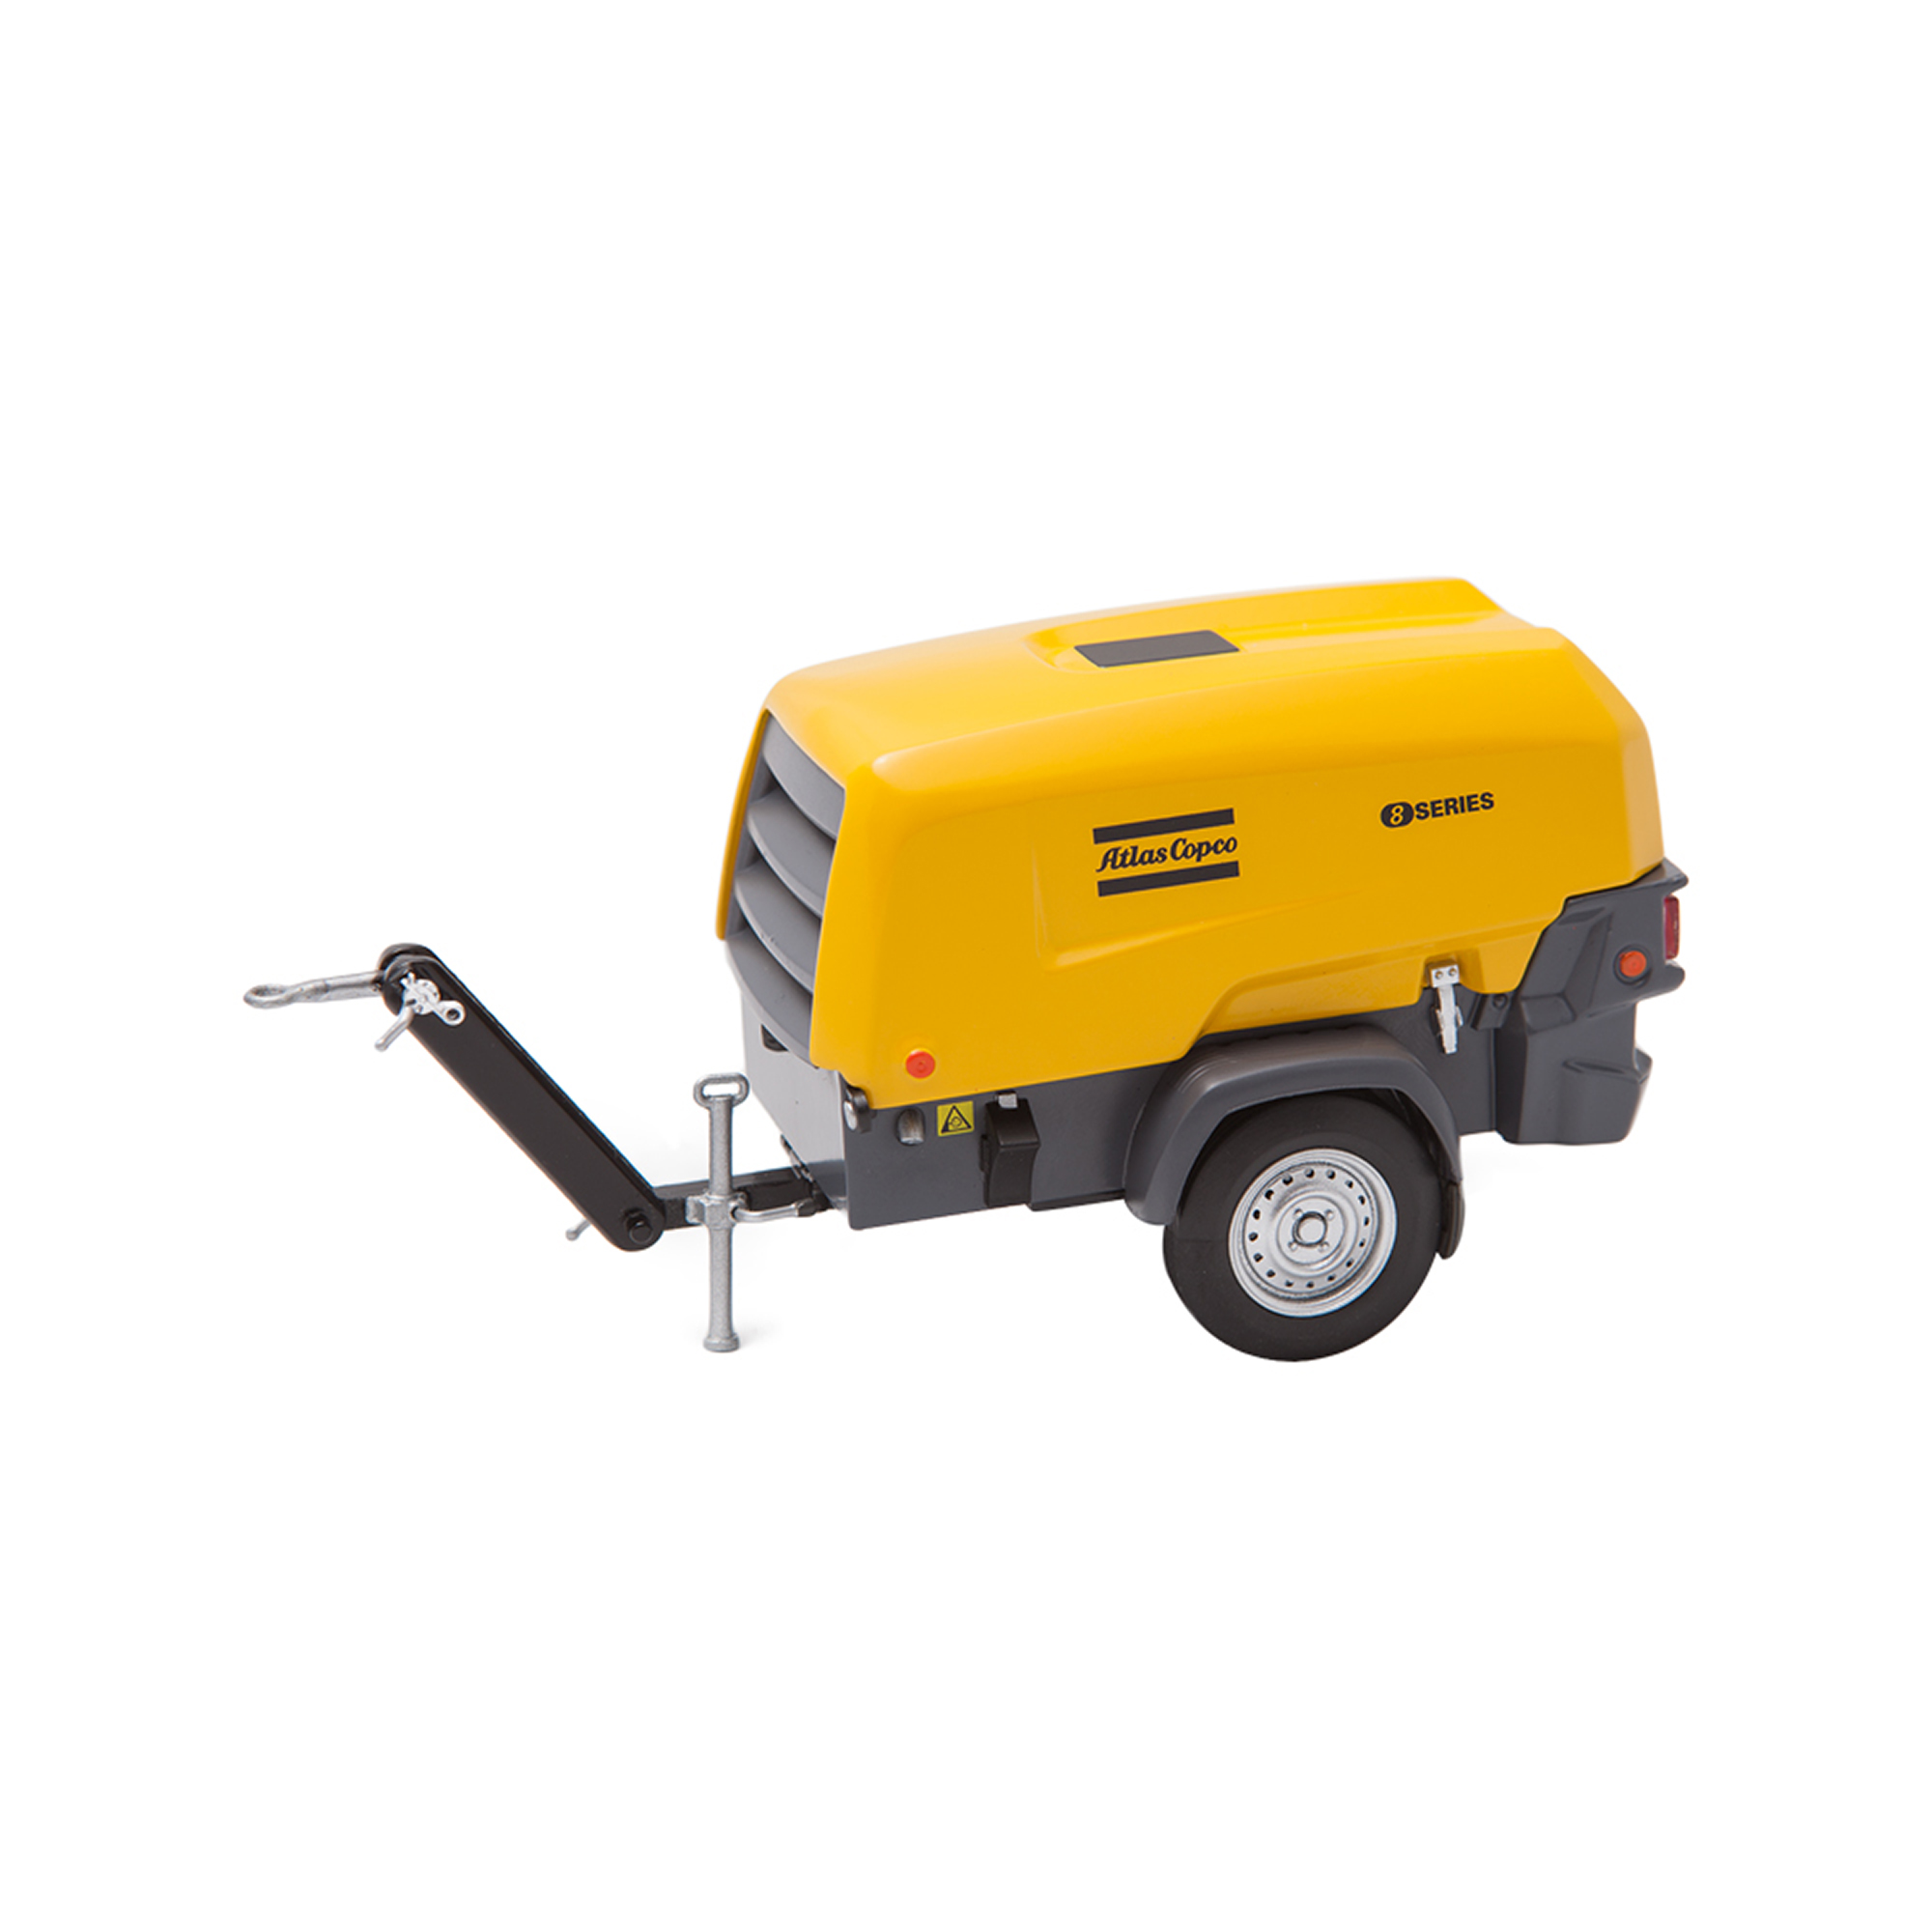 A detailed scale model of a compact and lightweight mobile compressor unit from Atlas Copco – 8 Series Compressor. Scale models are impressive in their detail and make great gifts for high-performing teams or special partner groups. They also look great as office or lobby features.